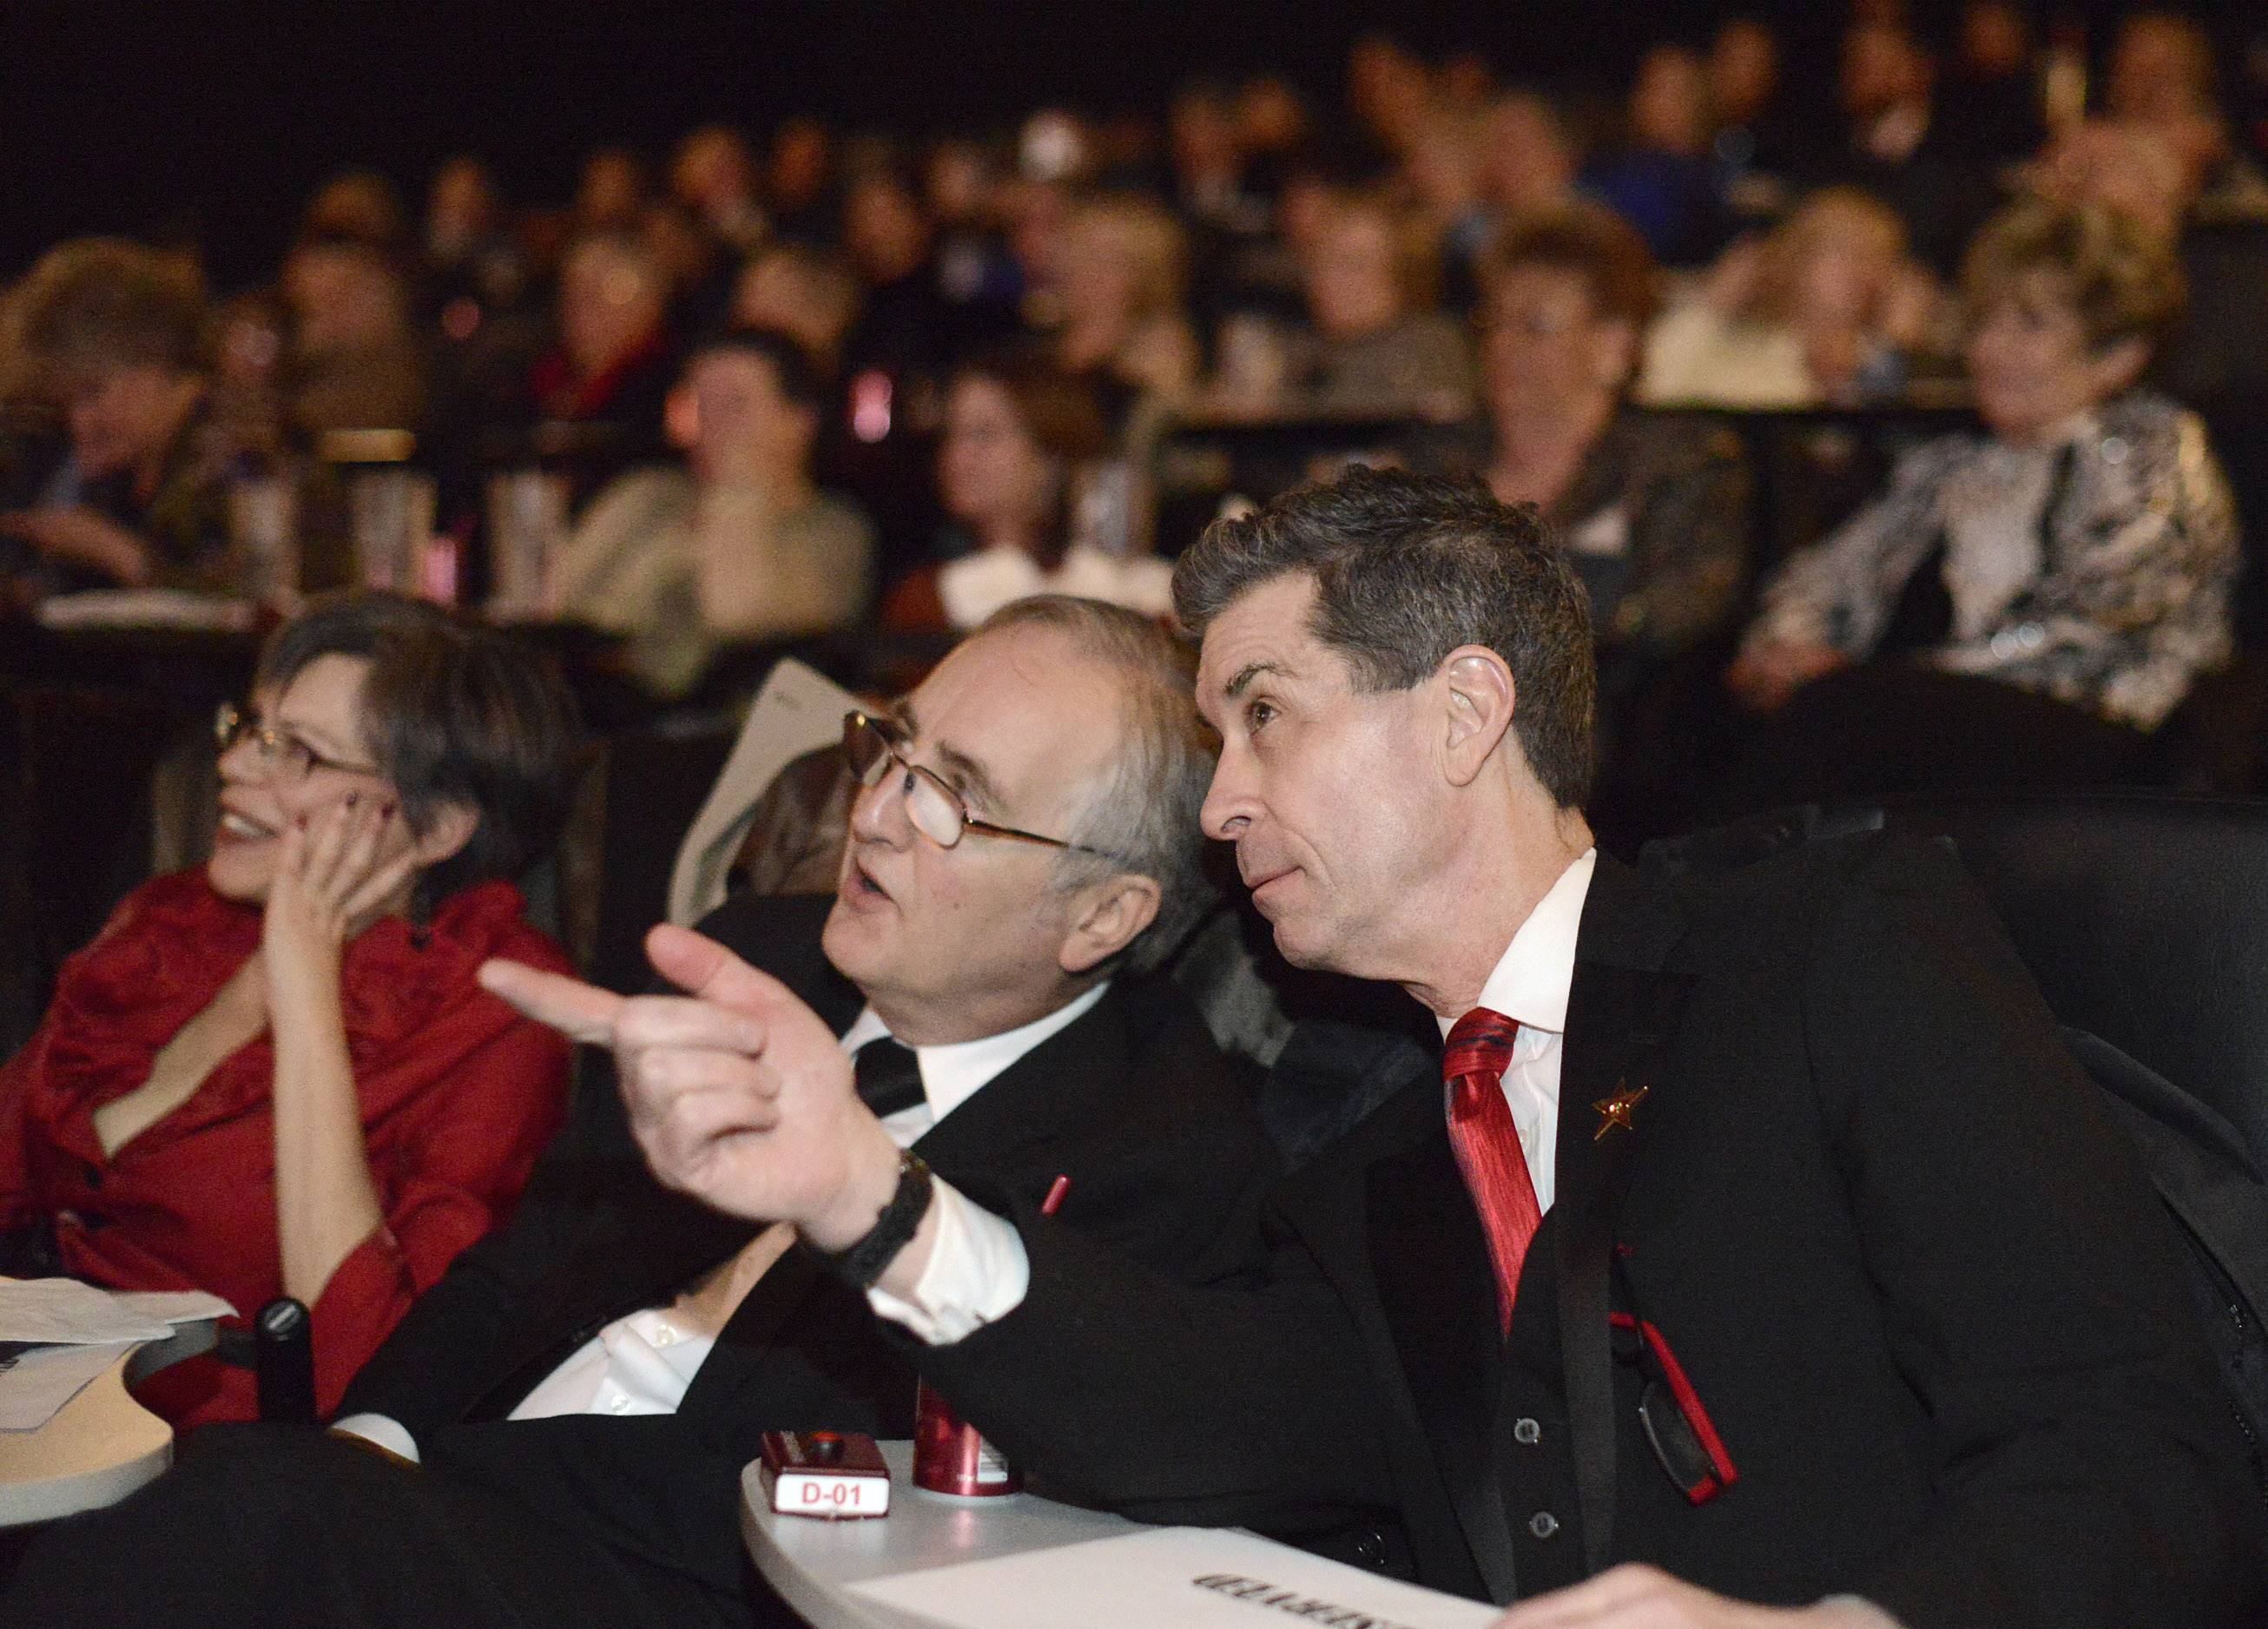 Raymond Benson of Buffalo Grove and the Daily Herald's Dann Gire chat as Jared Leto accepts the Best Supporting Actor Oscar (which they correctly predicted) as they host the 86th Academy Awards party for Daily Herald subscribers at Studio Movie Grill in Wheaton on Sunday, March 2.